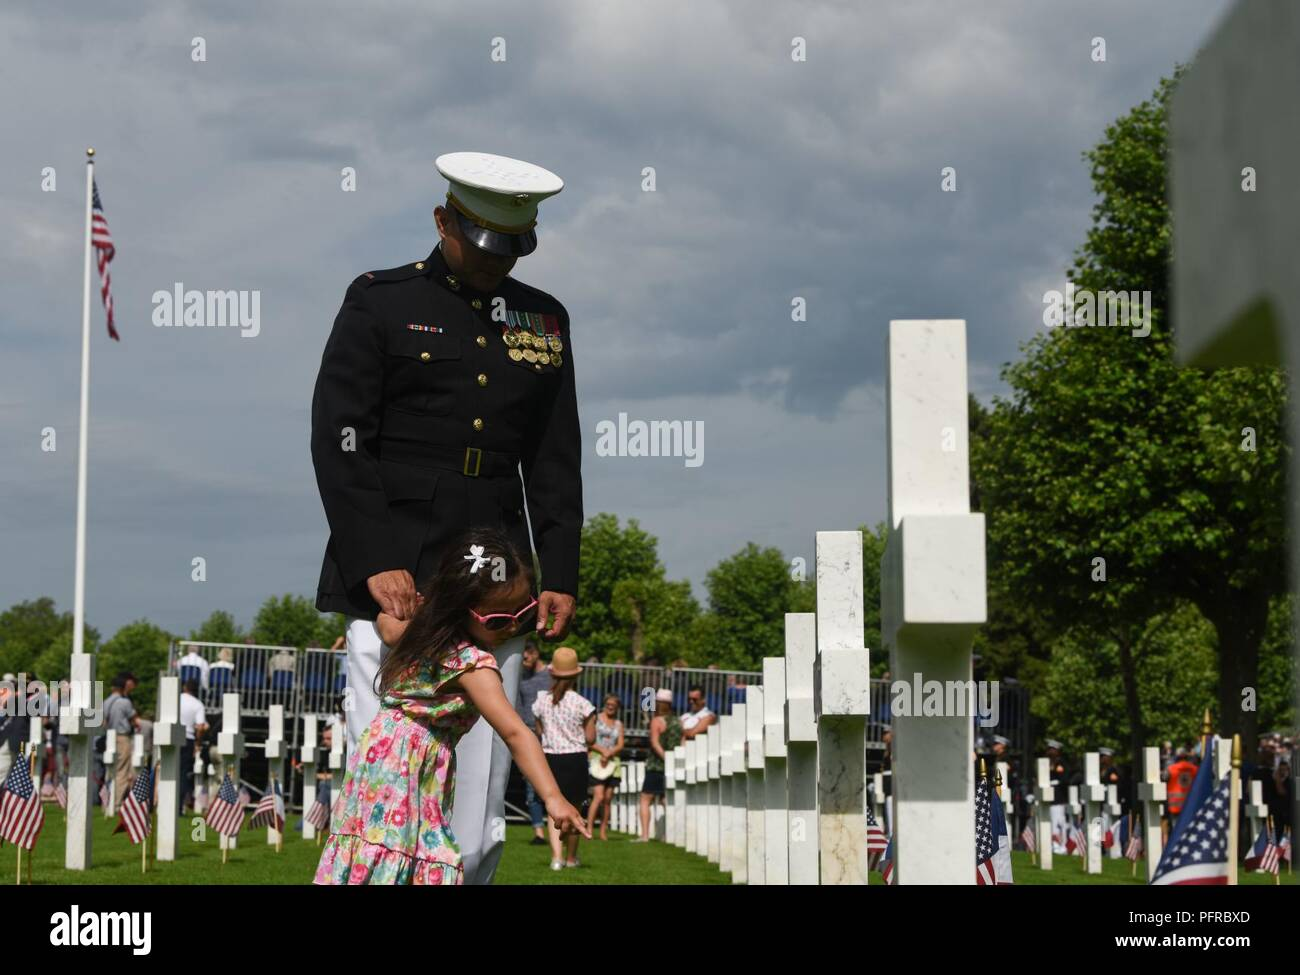 CWO4 Rene Garcia, personnel officer with Marine Forces Europe and Africa, visits headstones with his daughter during the Battle of Belleau Wood Centennial Ceremony at Aisne-Marne American Cemetery, France, May 27, 2018. The headstones belong to U.S. Marines and soldiers who fought and died in the Belleau Wood area of France during World War I. Stock Photo